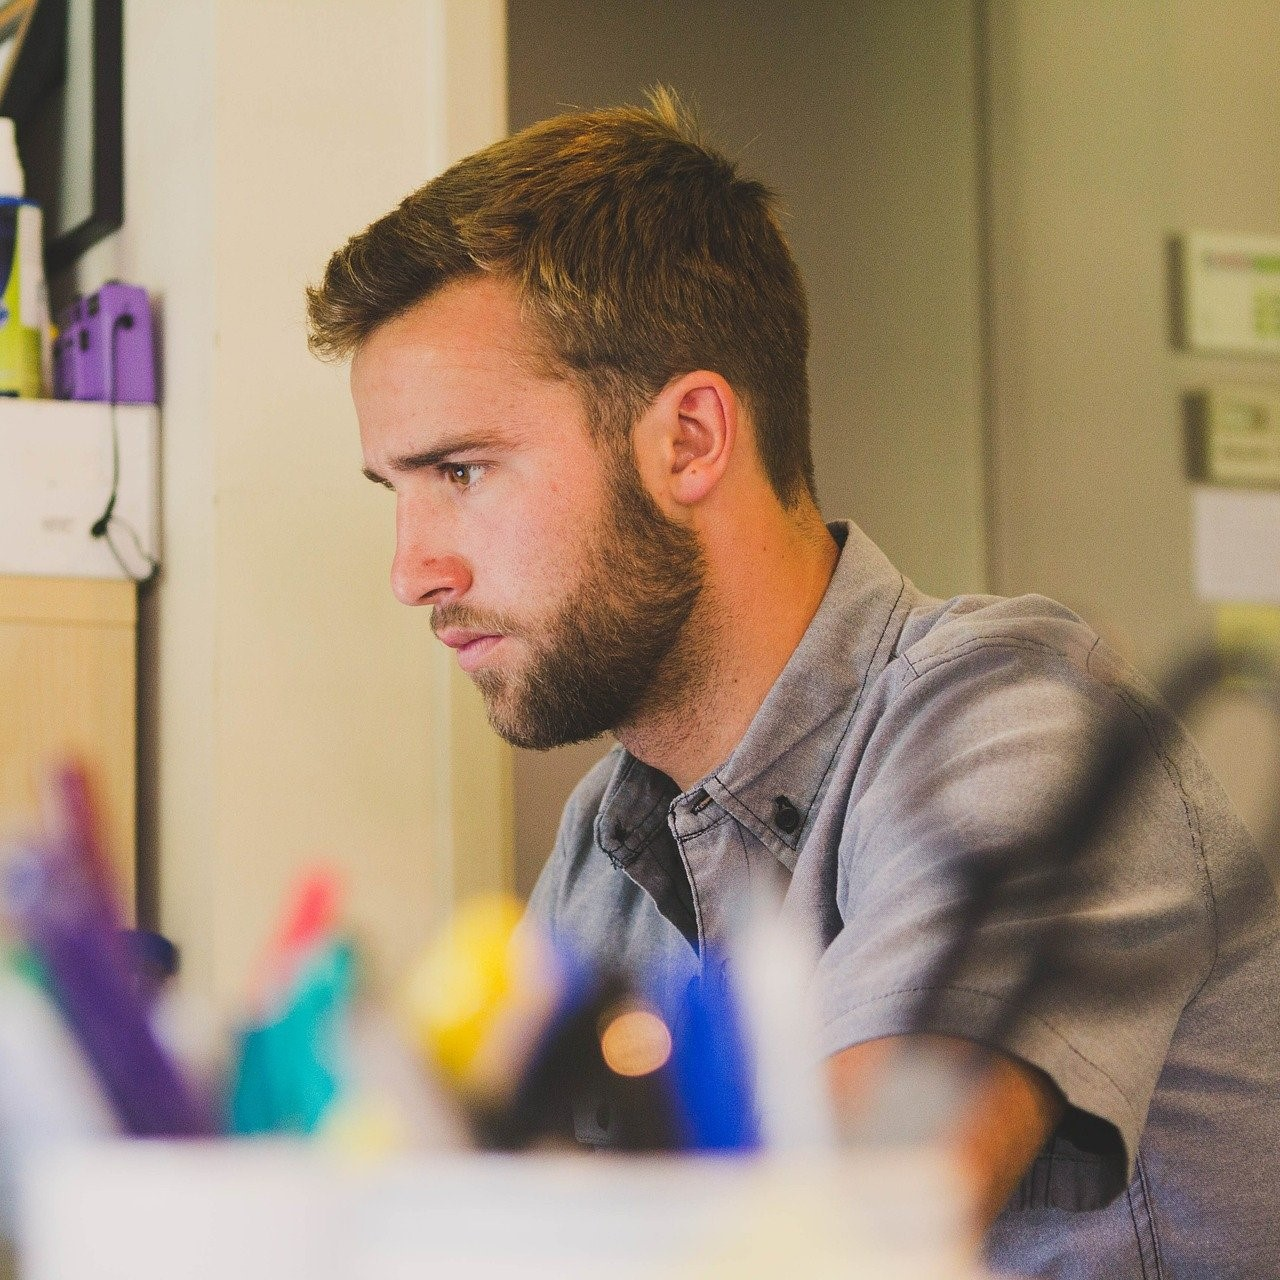 People still prefer permanent jobs despite rise in number of freelance roles